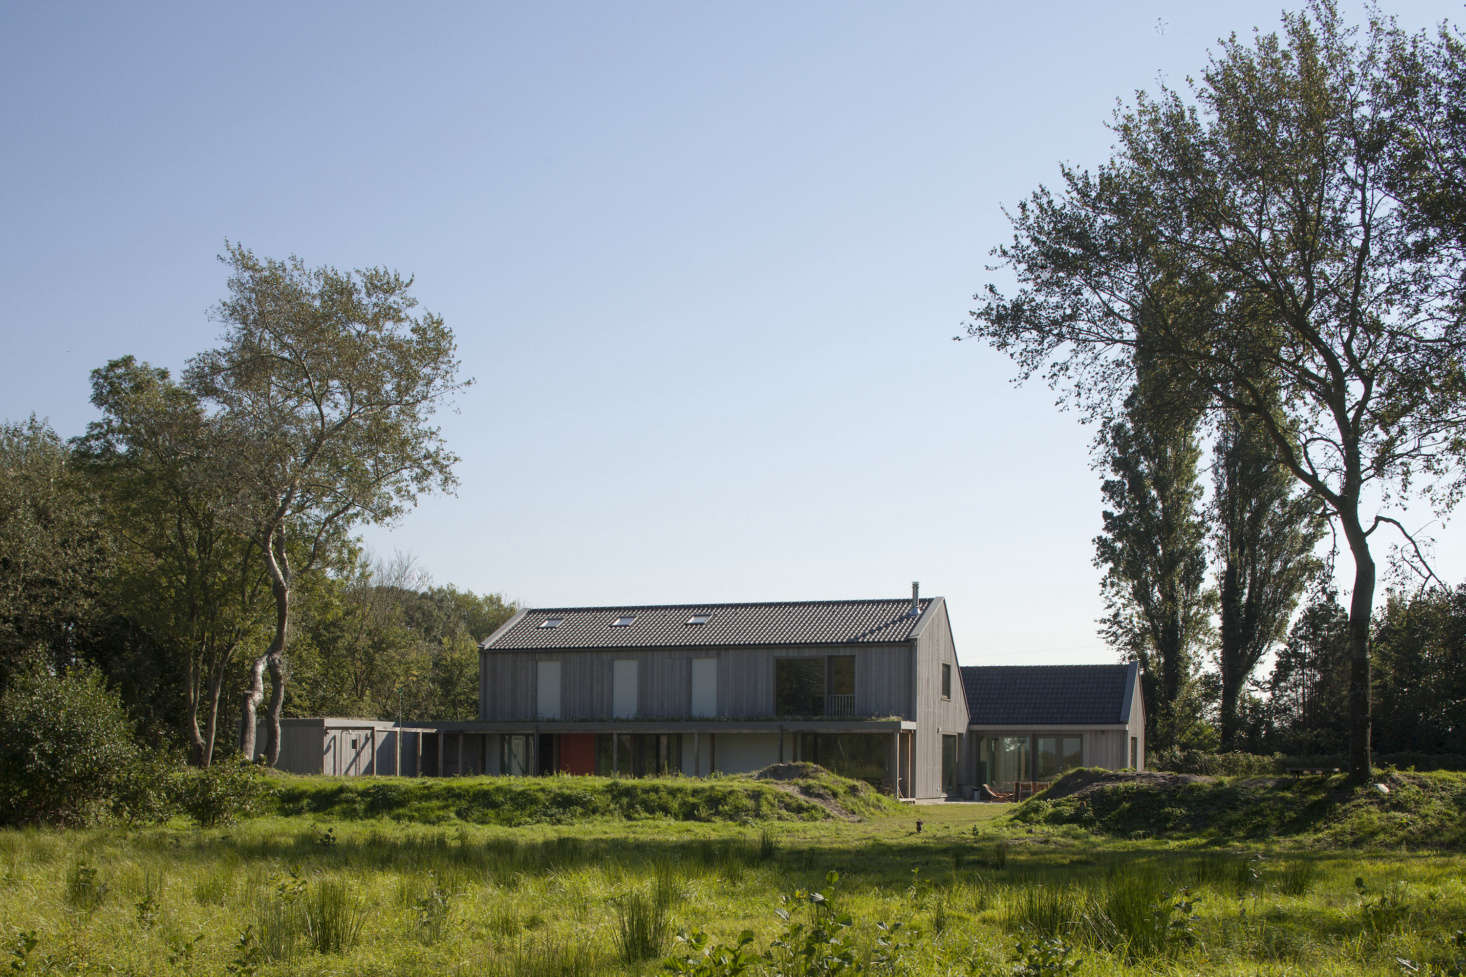 An Agrarian-Inspired Holiday House on an Agricultural Dutch Island